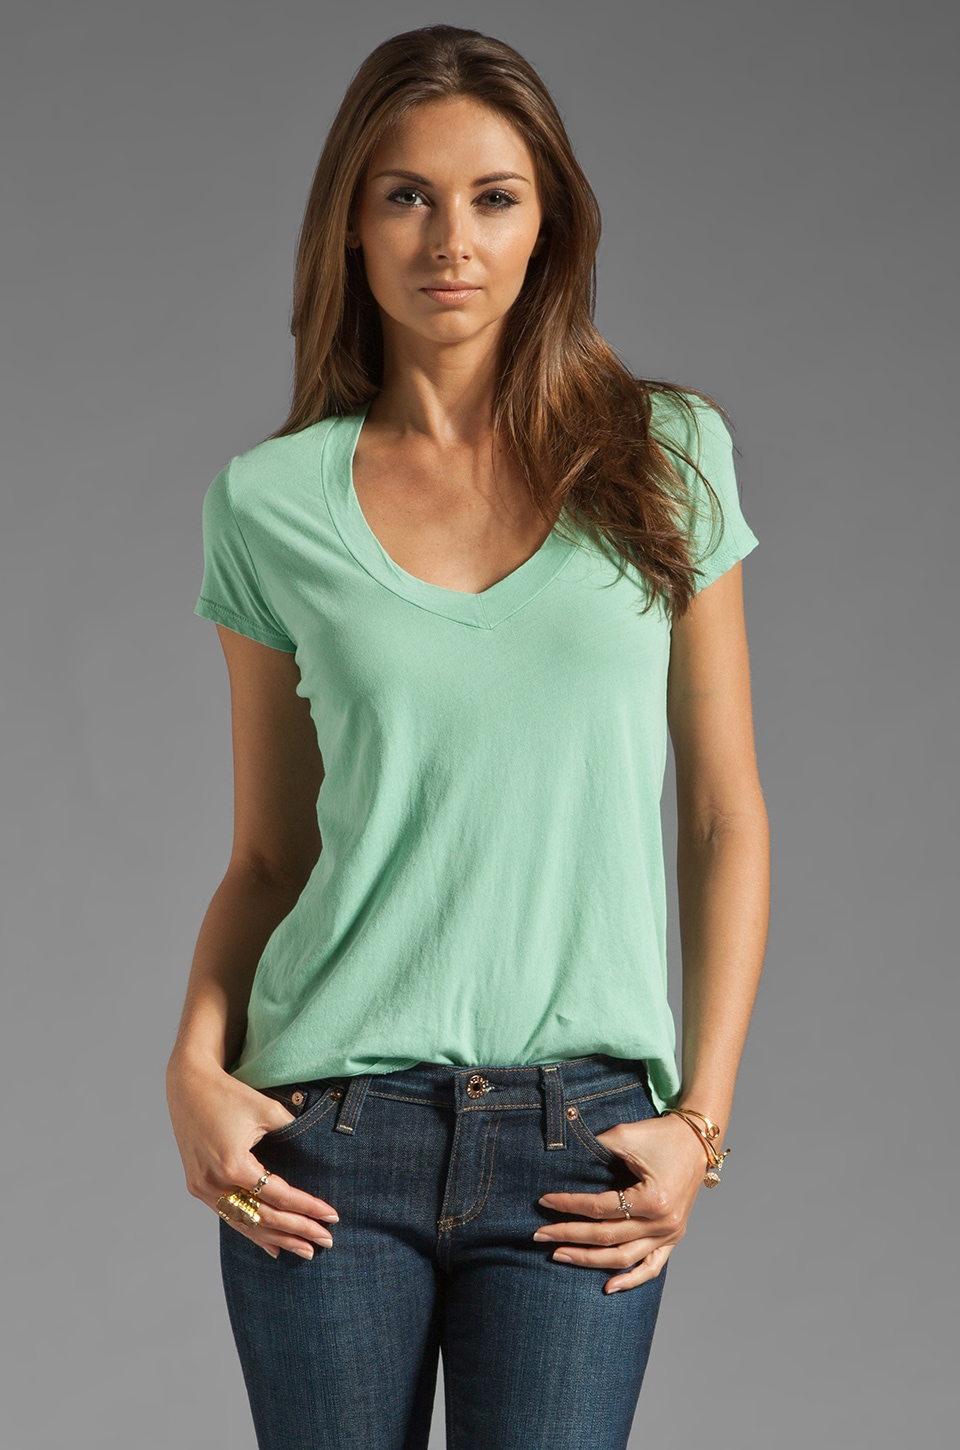 James Perse Short Sleeve Casual V Neck Tee in Spearmint